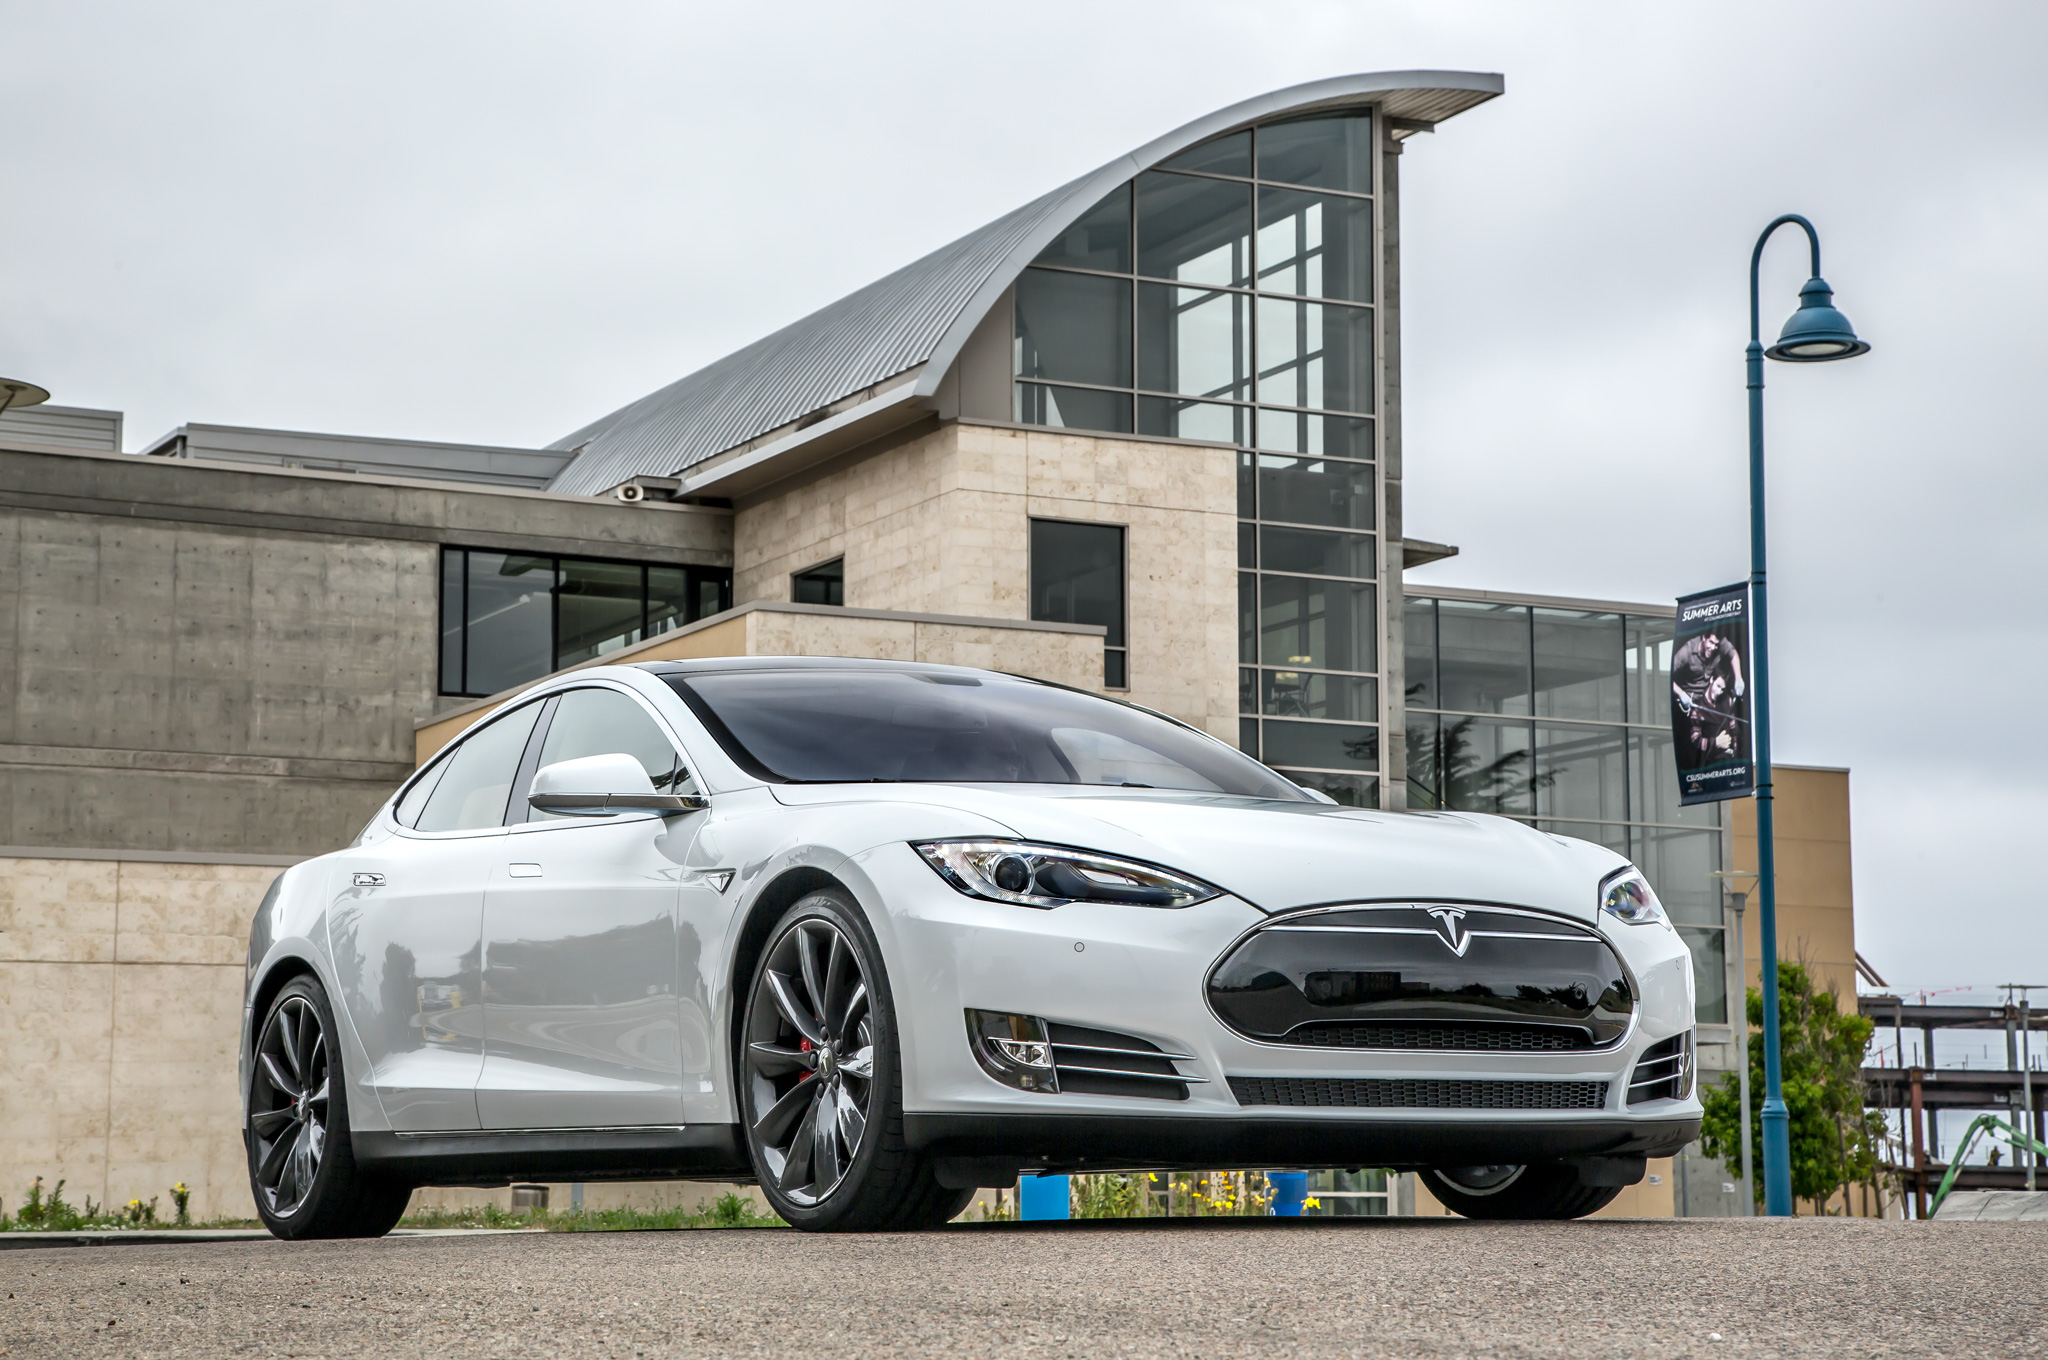 2014 tesla model s 60 exterior preview 1329 cars performance reviews and test drive. Black Bedroom Furniture Sets. Home Design Ideas